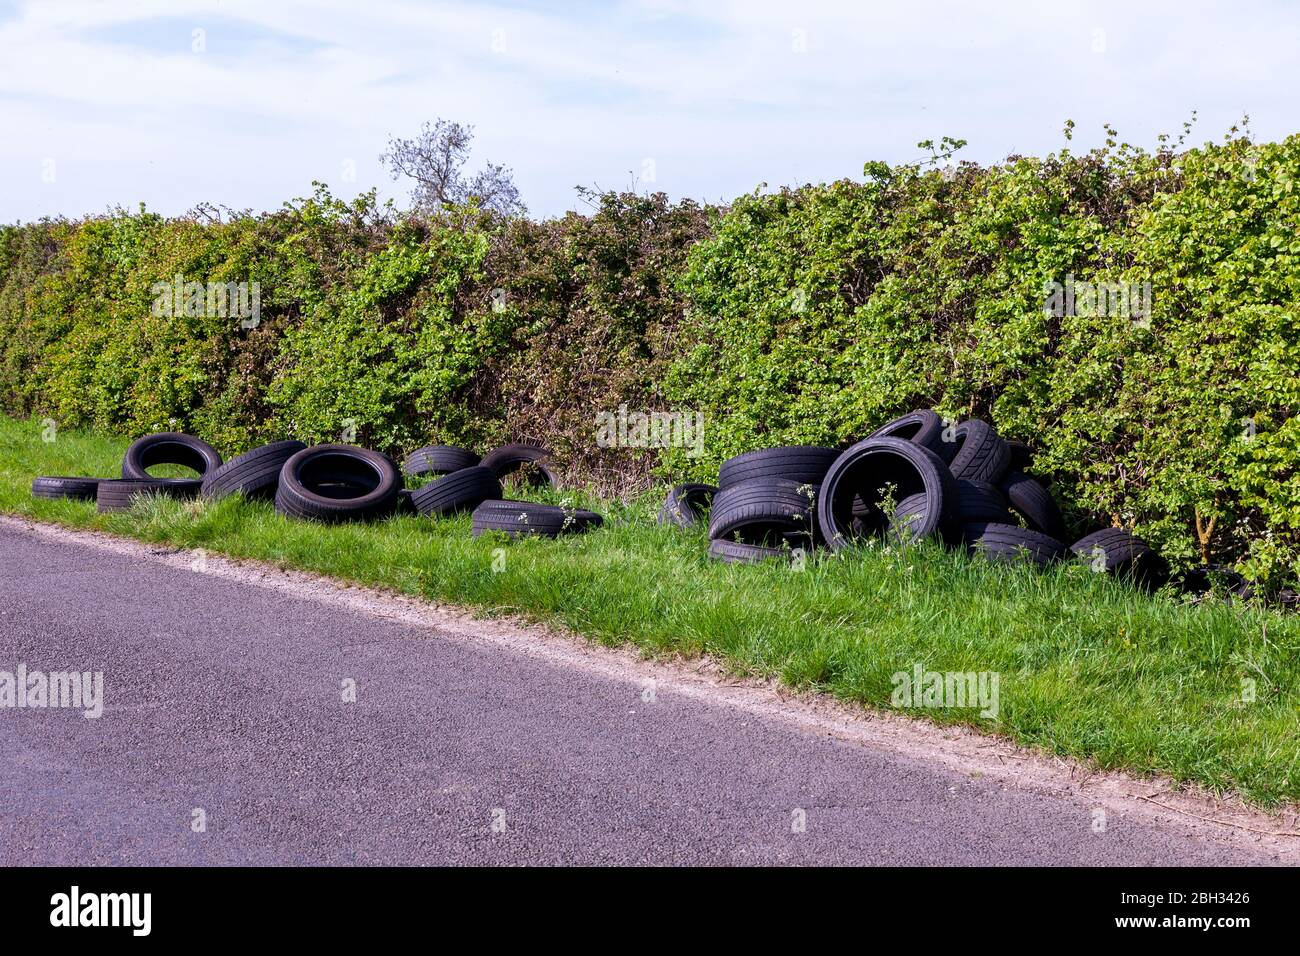 Northampton, UK. 23rd April 2020. Tyres dumped on the verge of a country lane close to Castle Ashby gardens, recycling centres were closed on the 21st April 2020 at 1800 due to the Coronavirus until further notice and already fly tipping is on the increase. Credit: Keith J Smith/Alamy Live News Stock Photo